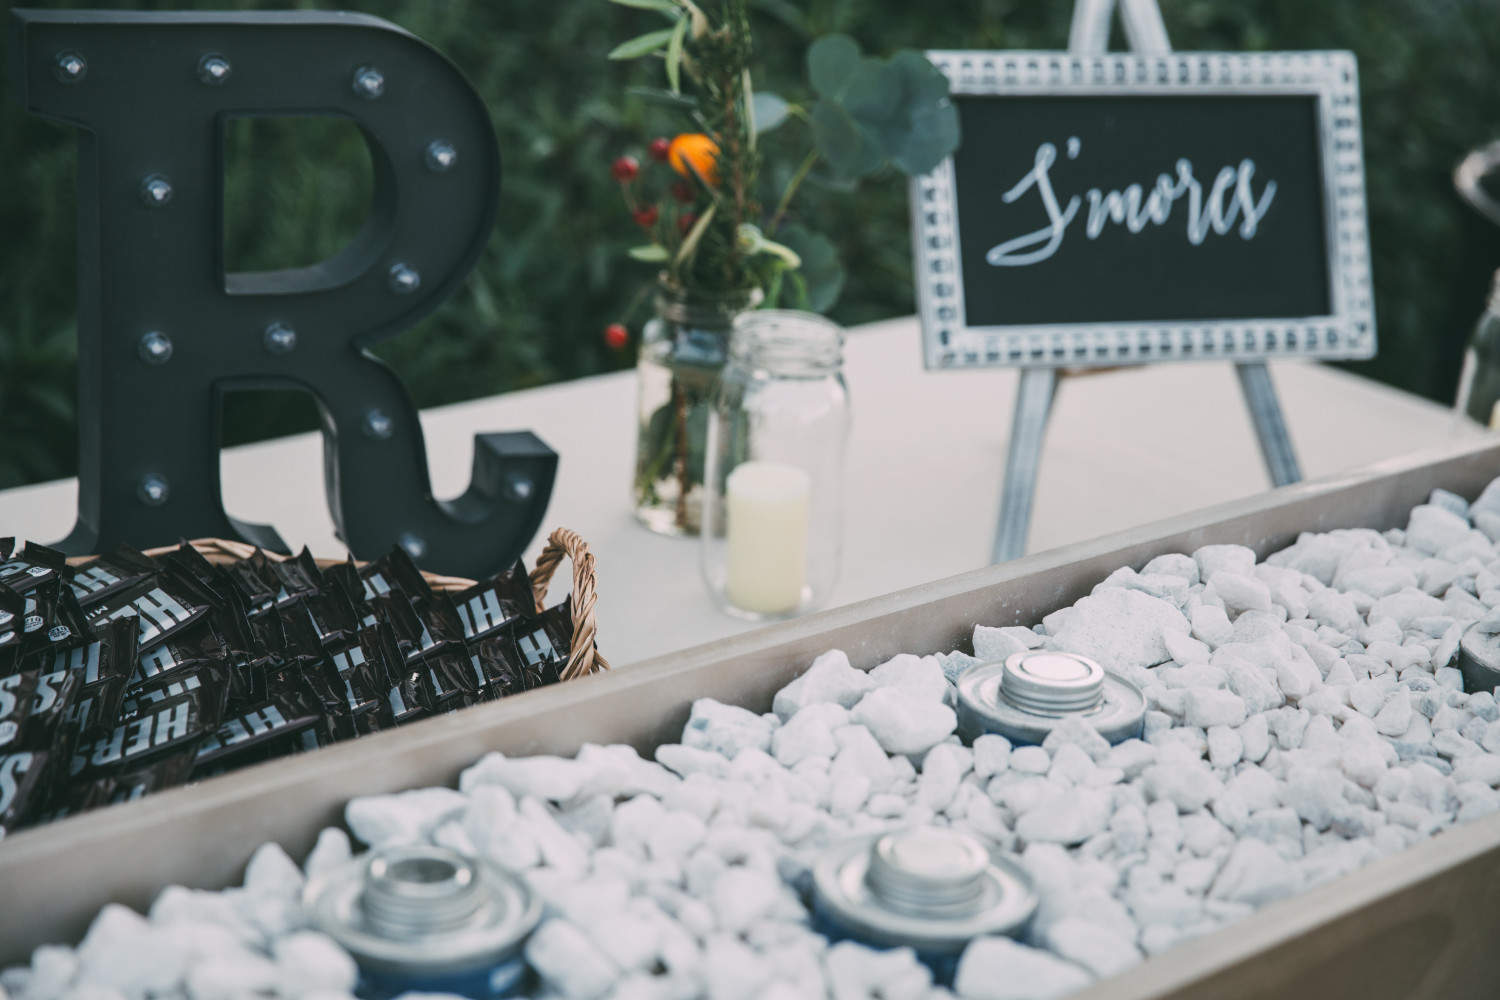 Texas Winter Wedding, Austin,TX, The Inn at Old School, dessert table, s'mores bar, wedding details